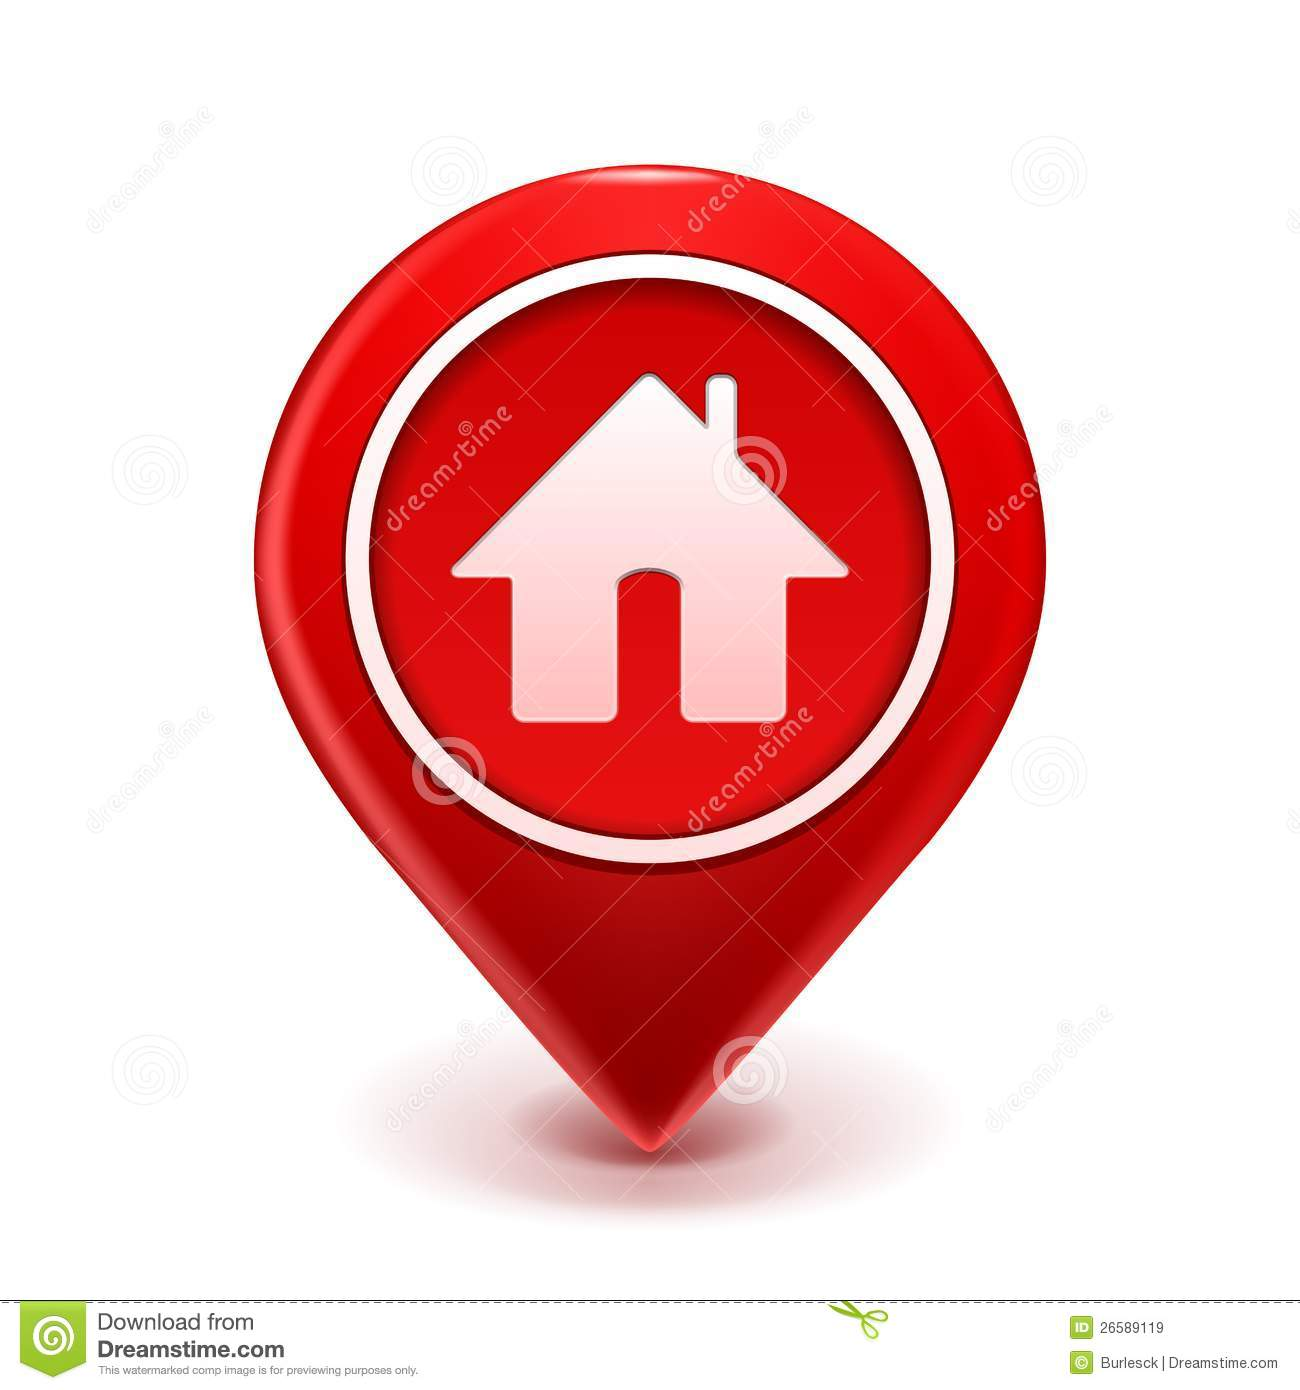 A house icon to clic on to apply for a home loan